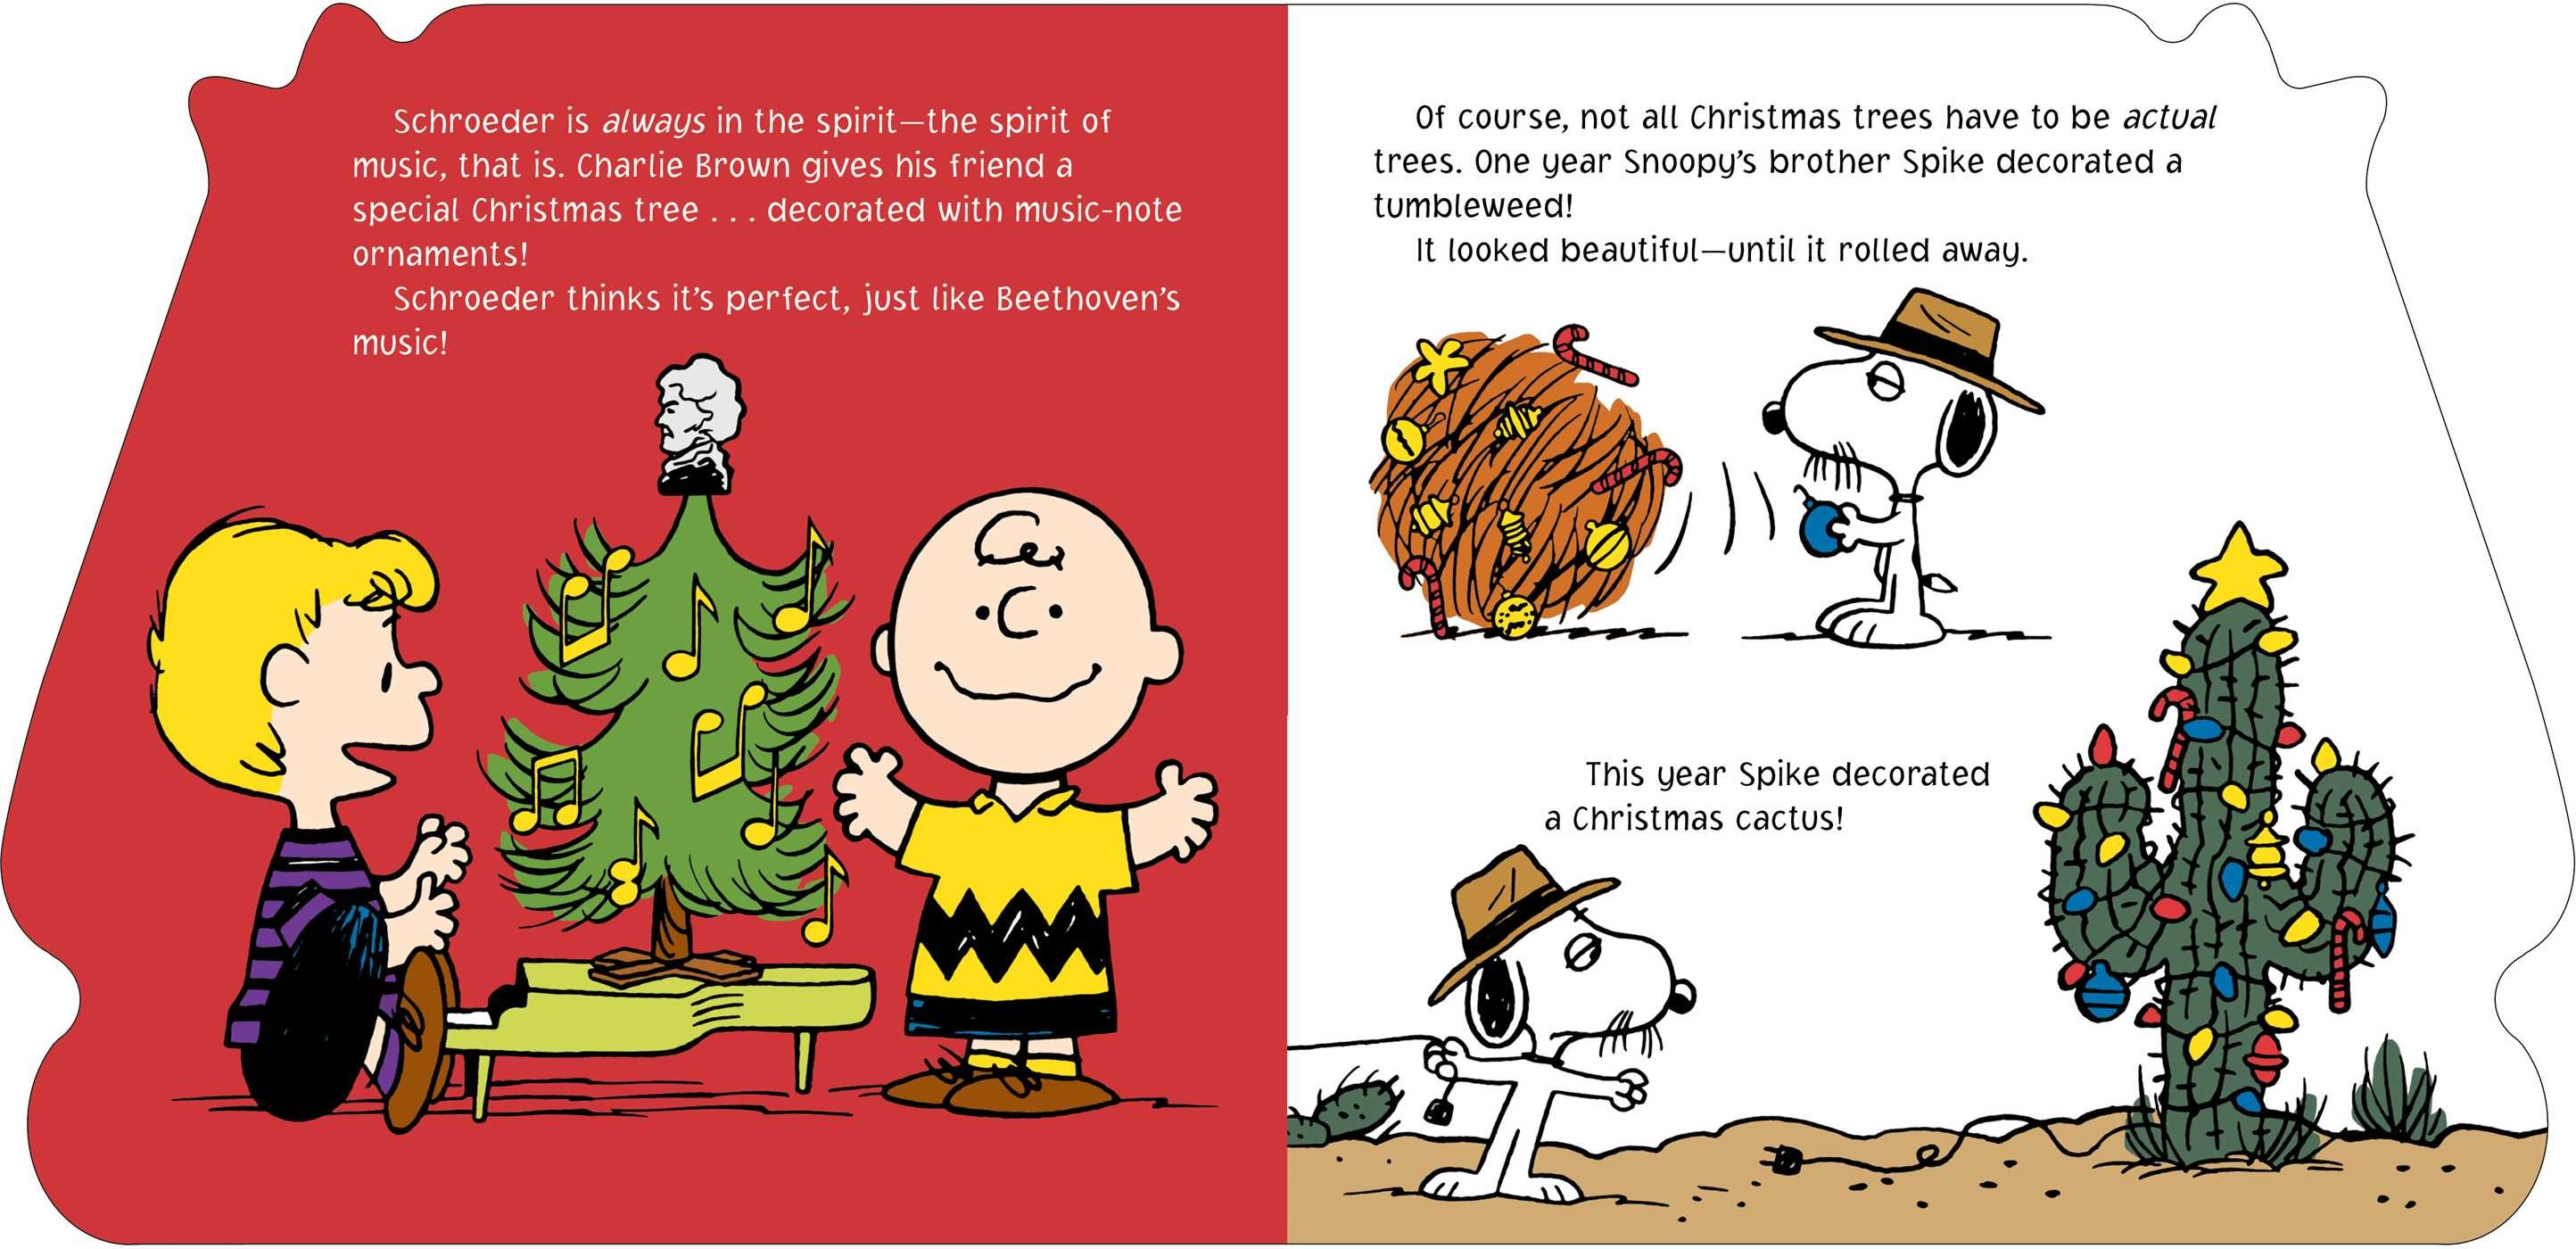 merry christmas charlie brown 9781534404212in01 - Snoopy Merry Christmas Images